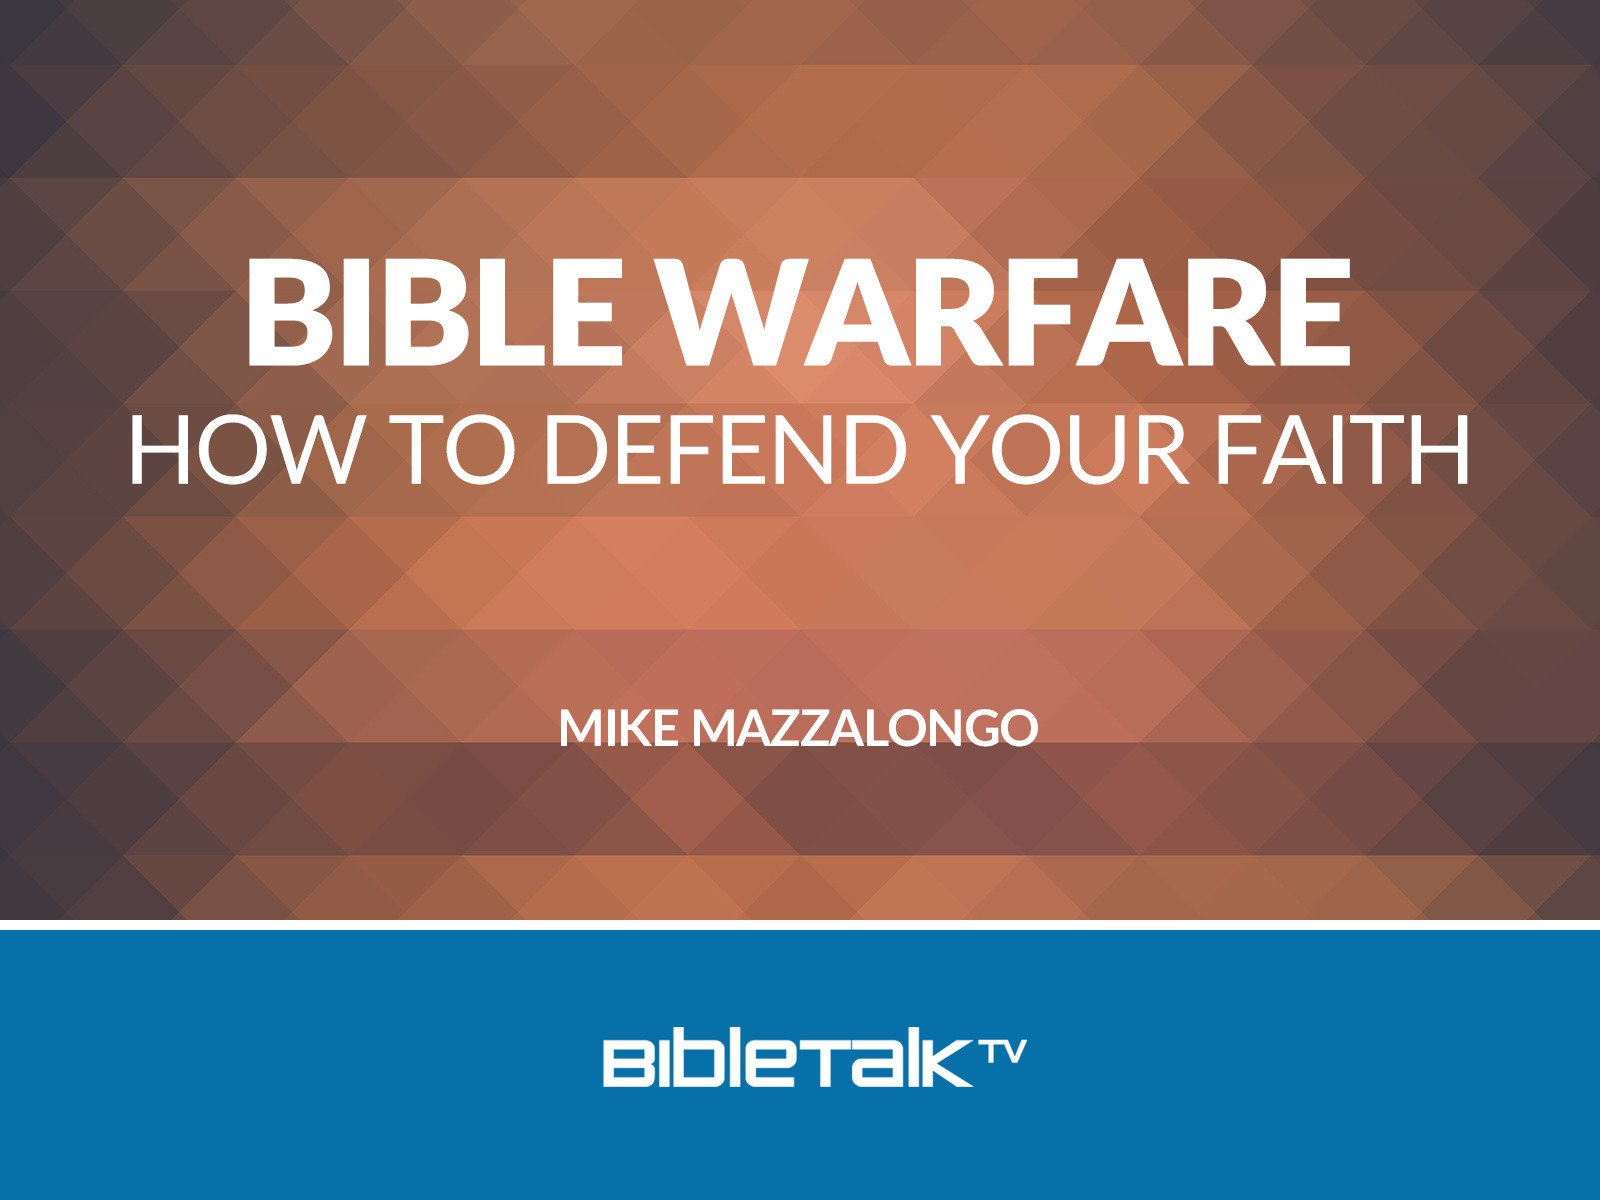 Bible Warfare: How to Defend Your Faith